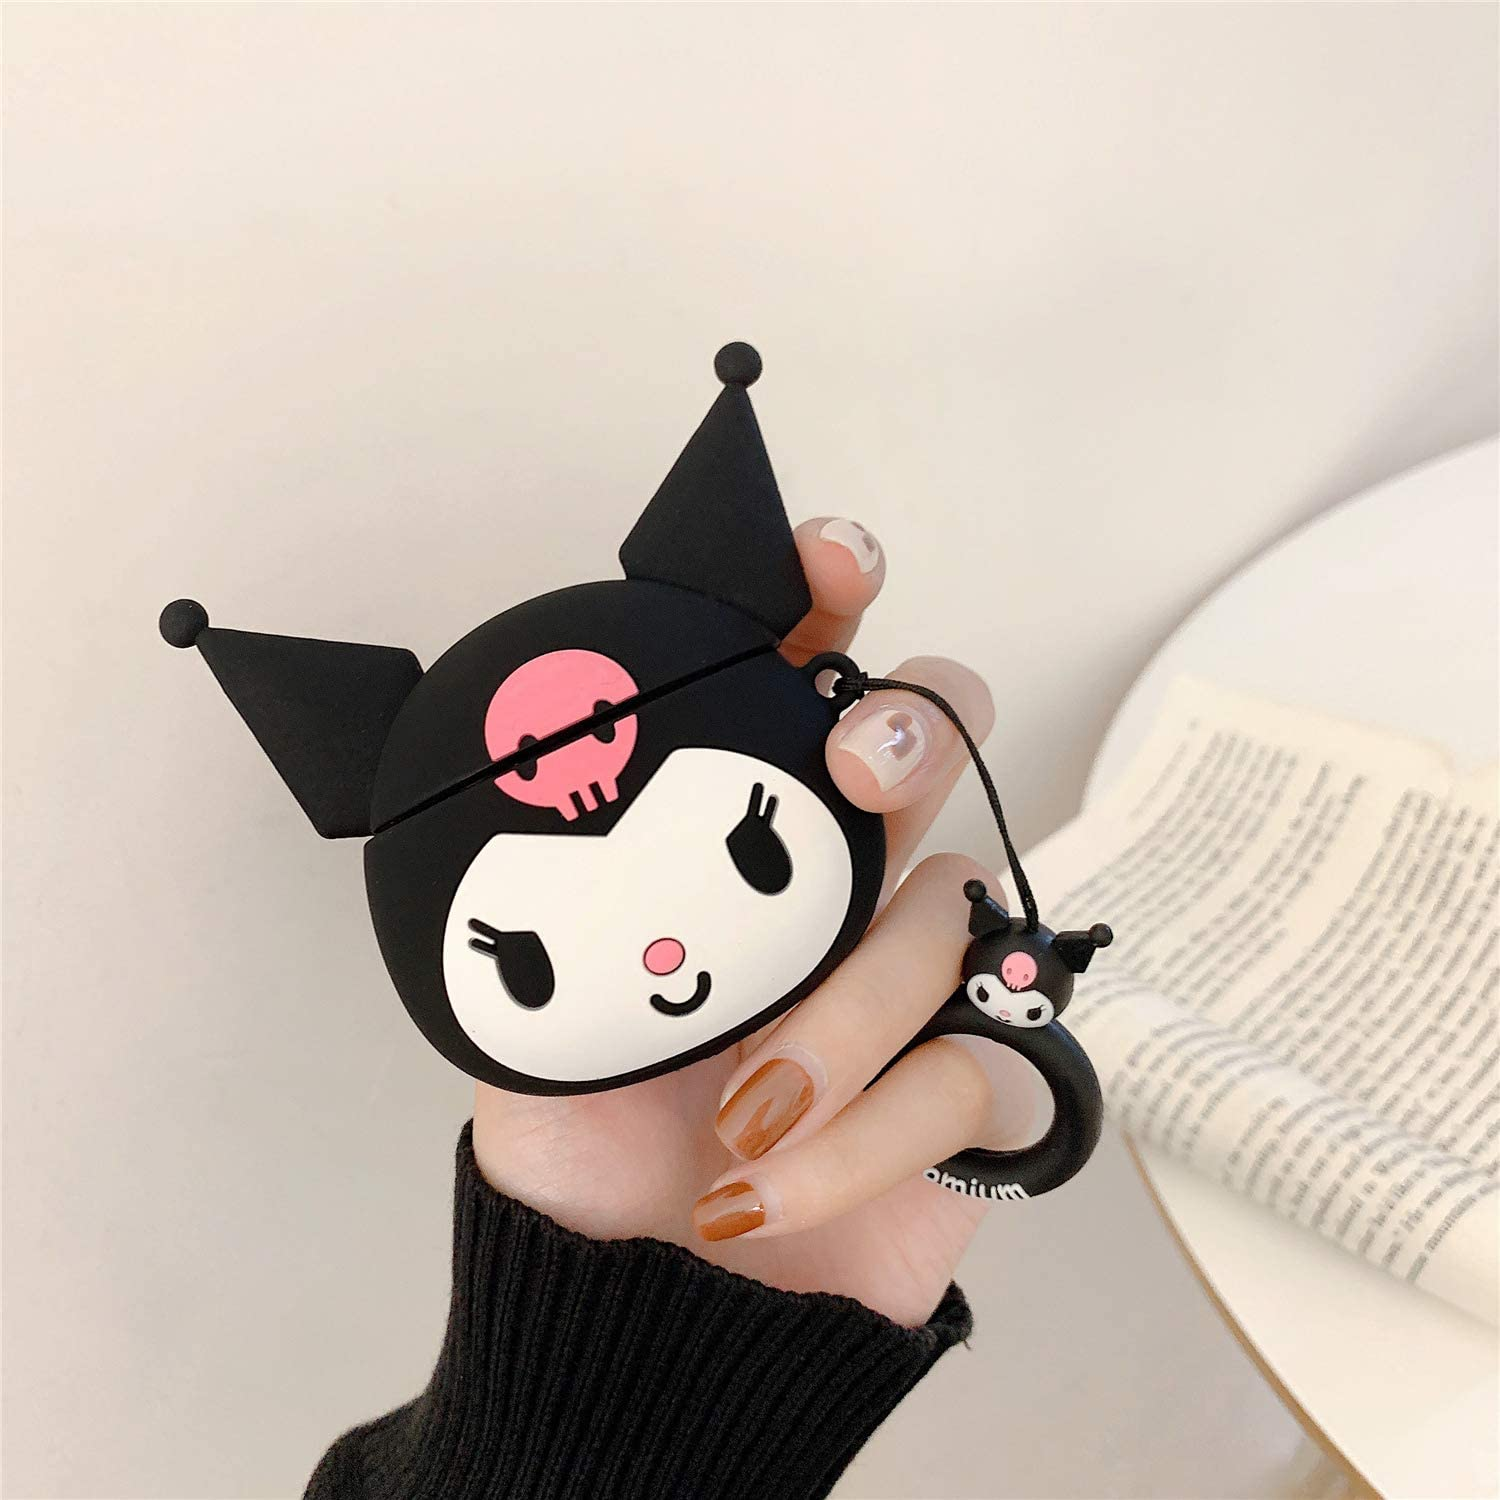 Black Kuromi iFiLOVE Compatible with Airpods Pro Case Girls Kids Cute Cartoon 3D Kuromi with Plush Ball Keychain Wristband Strap Soft Silicone Protective Case Cover for Apple Airpods Pro Case 3